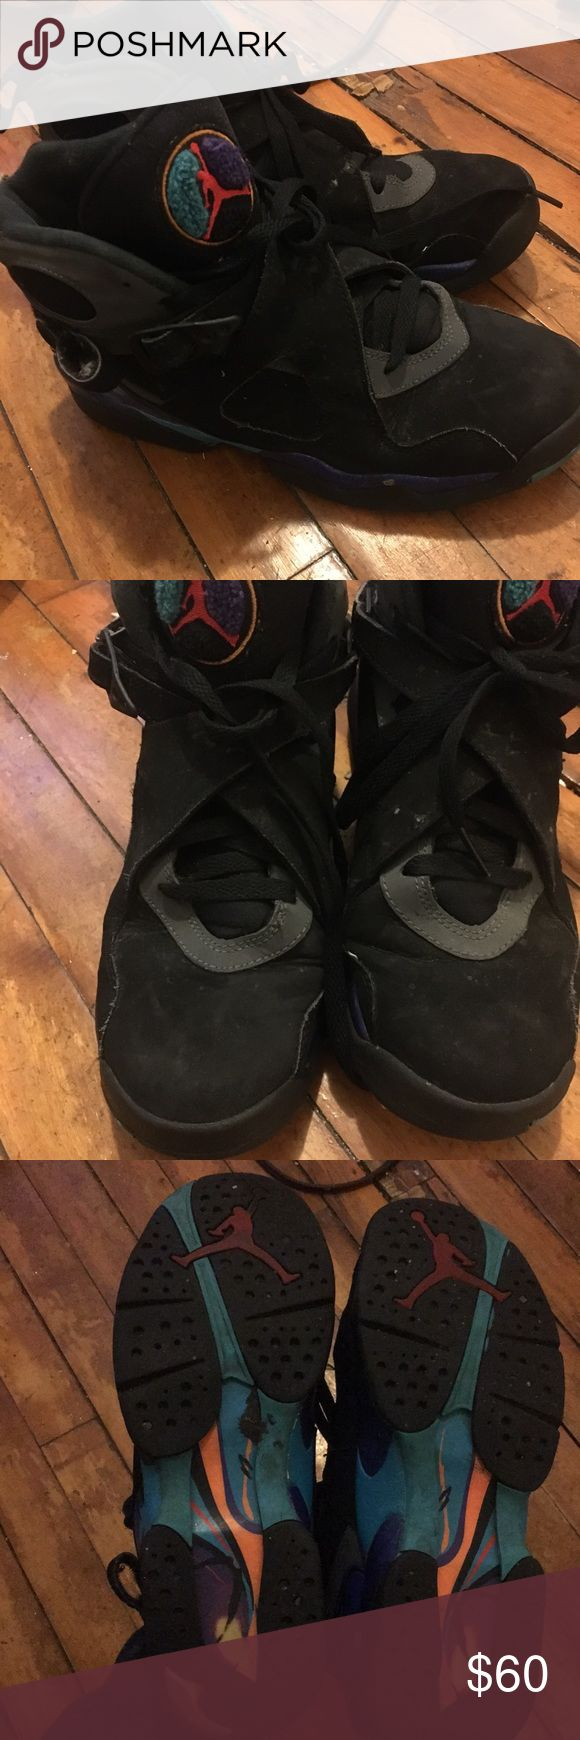 Jordan aqua 8's Has a Rip on the heal tab on one of the sneakers but still wearable 6.5-10 condition women's sz 6 pre-owned Jordan Shoes Sneakers